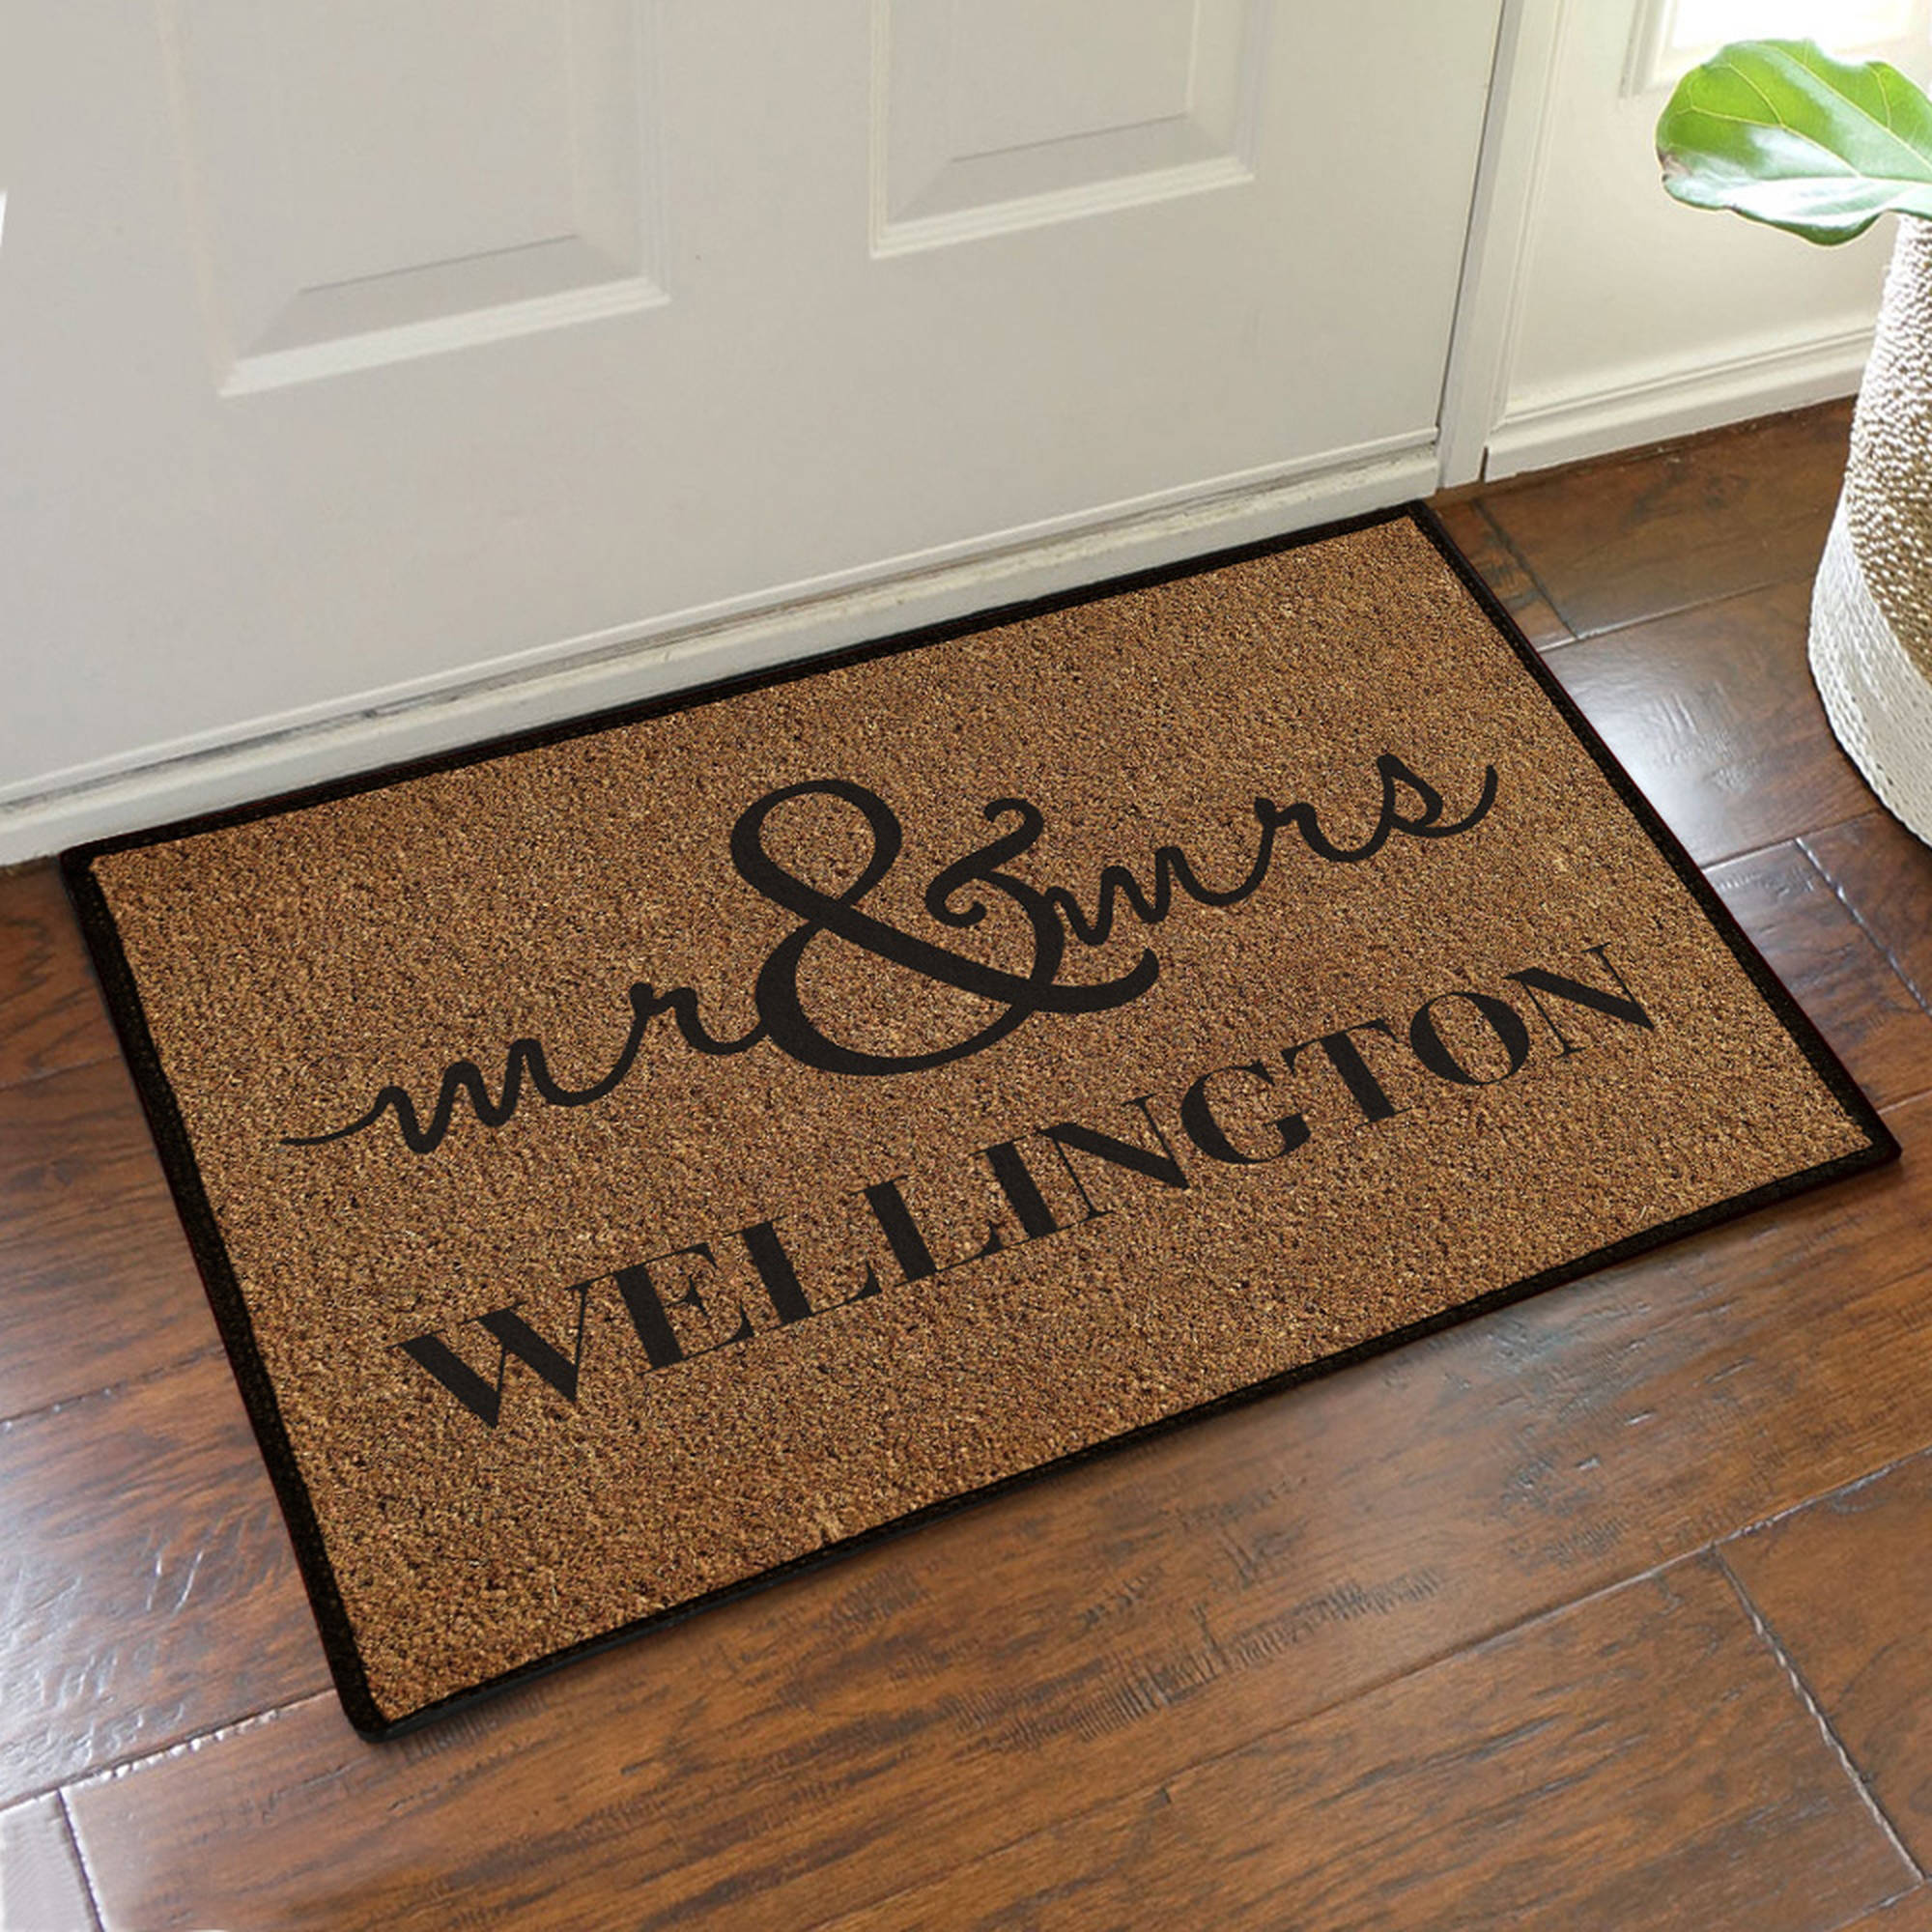 "Personalized Couples Doormat, 19.5"" x 15.5"""